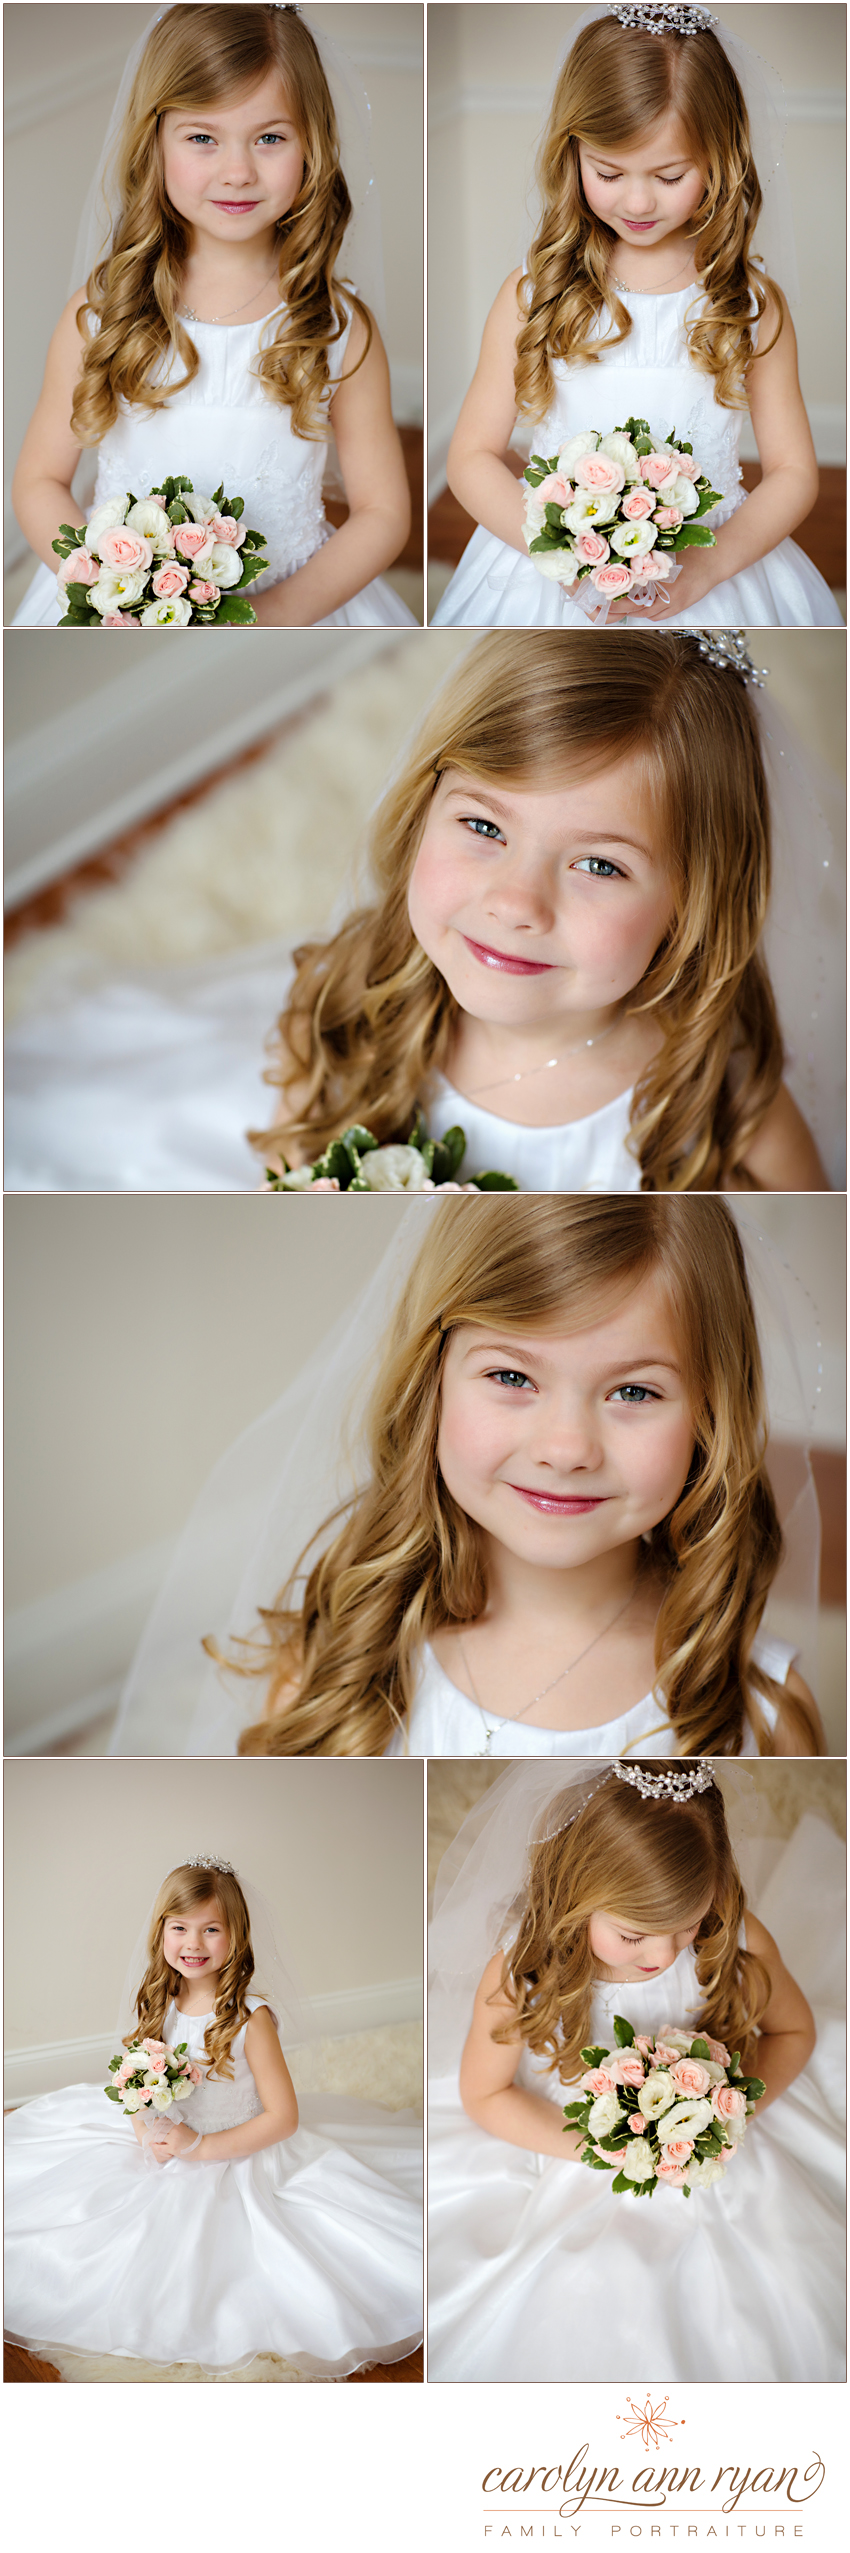 Carolyn Ann Ryan photographs 8 year old for communion portraits